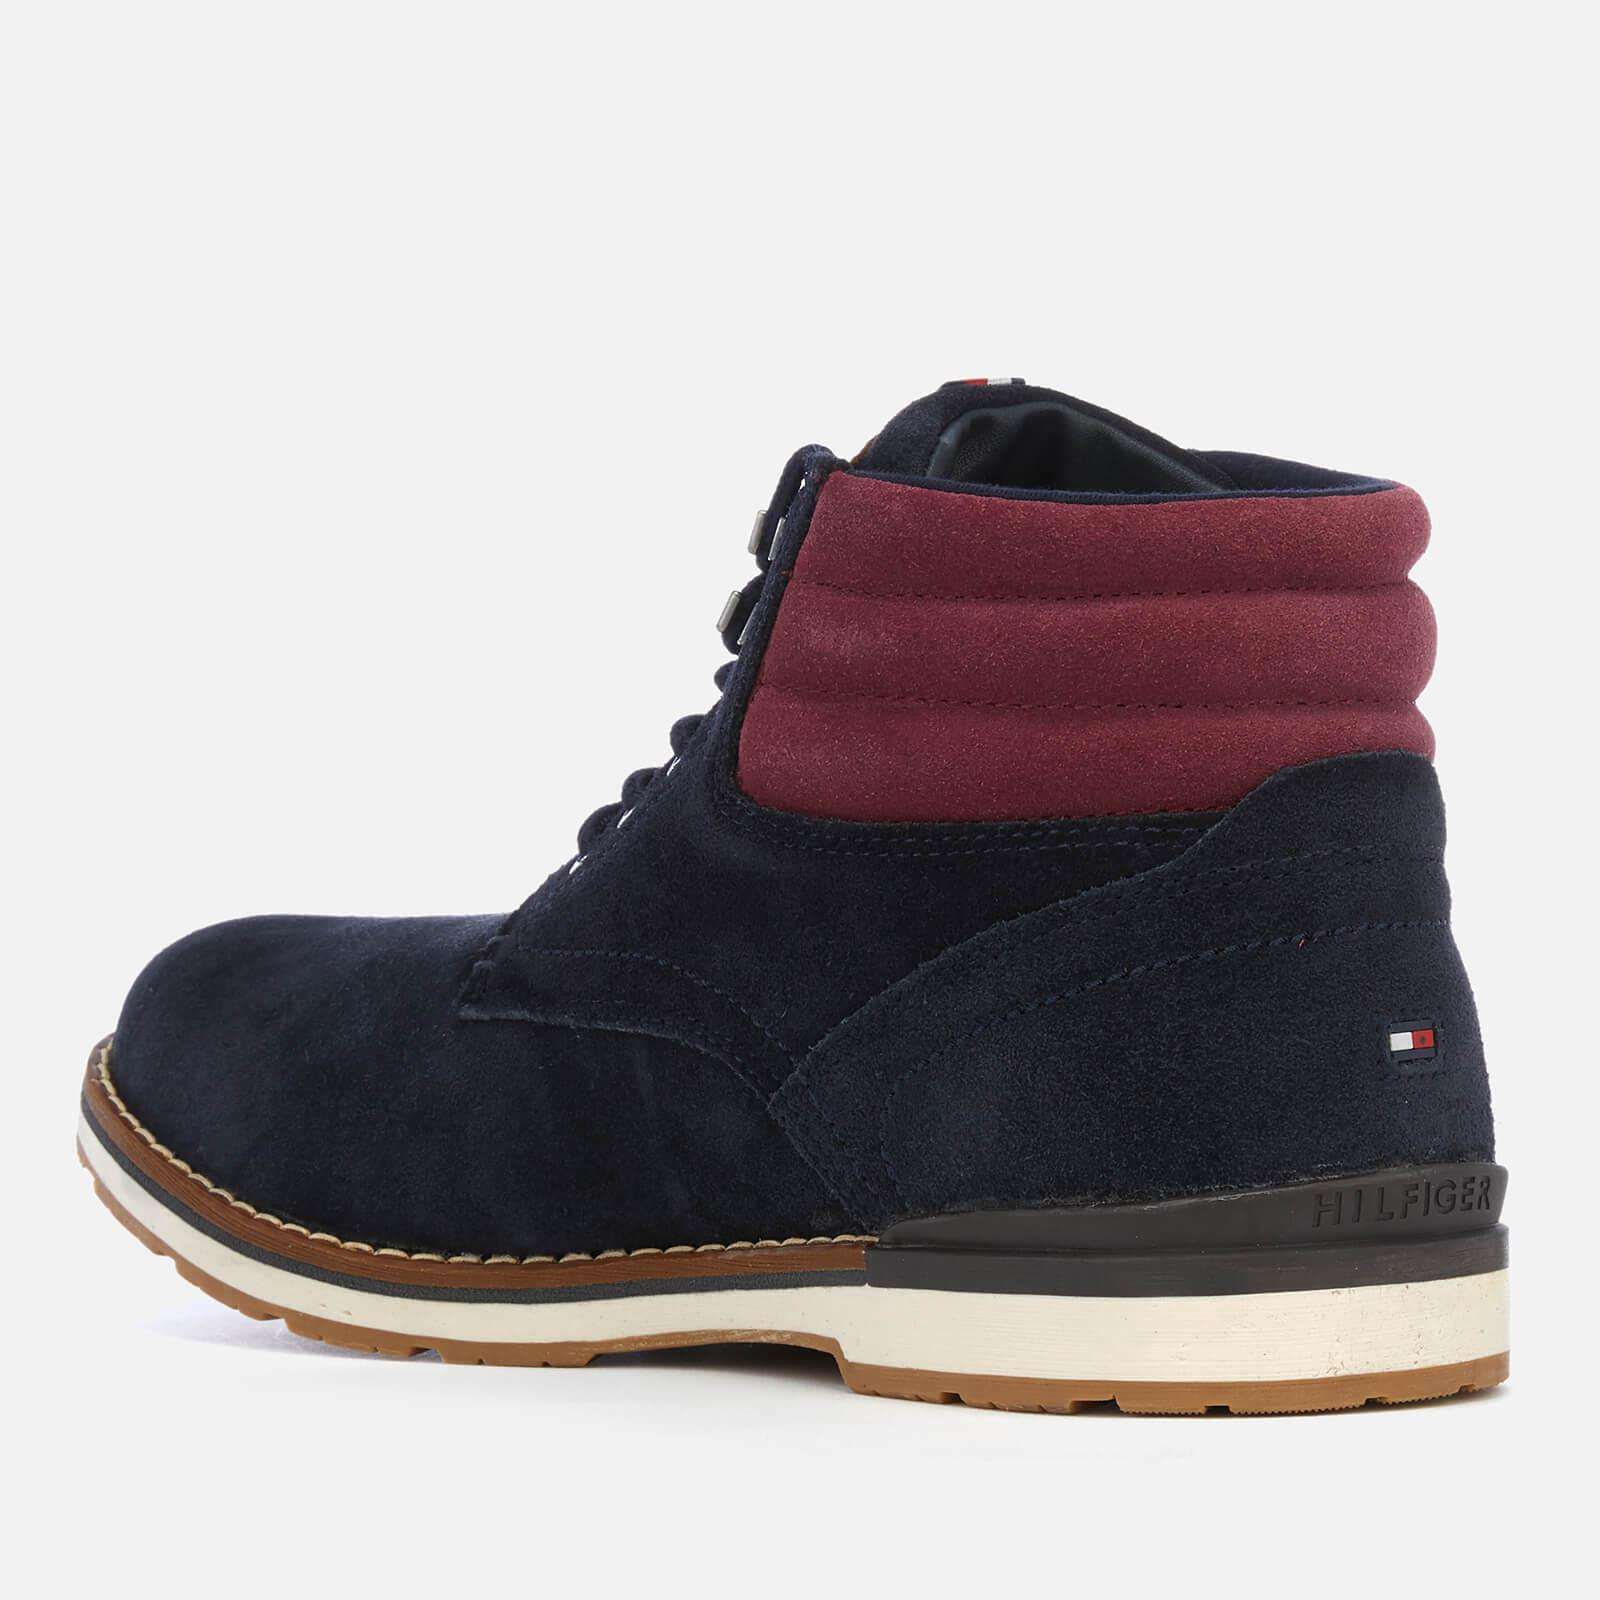 ed6fd8bc135ef5 Tommy Hilfiger - Blue Outdoor Suede Boots for Men - Lyst. View fullscreen